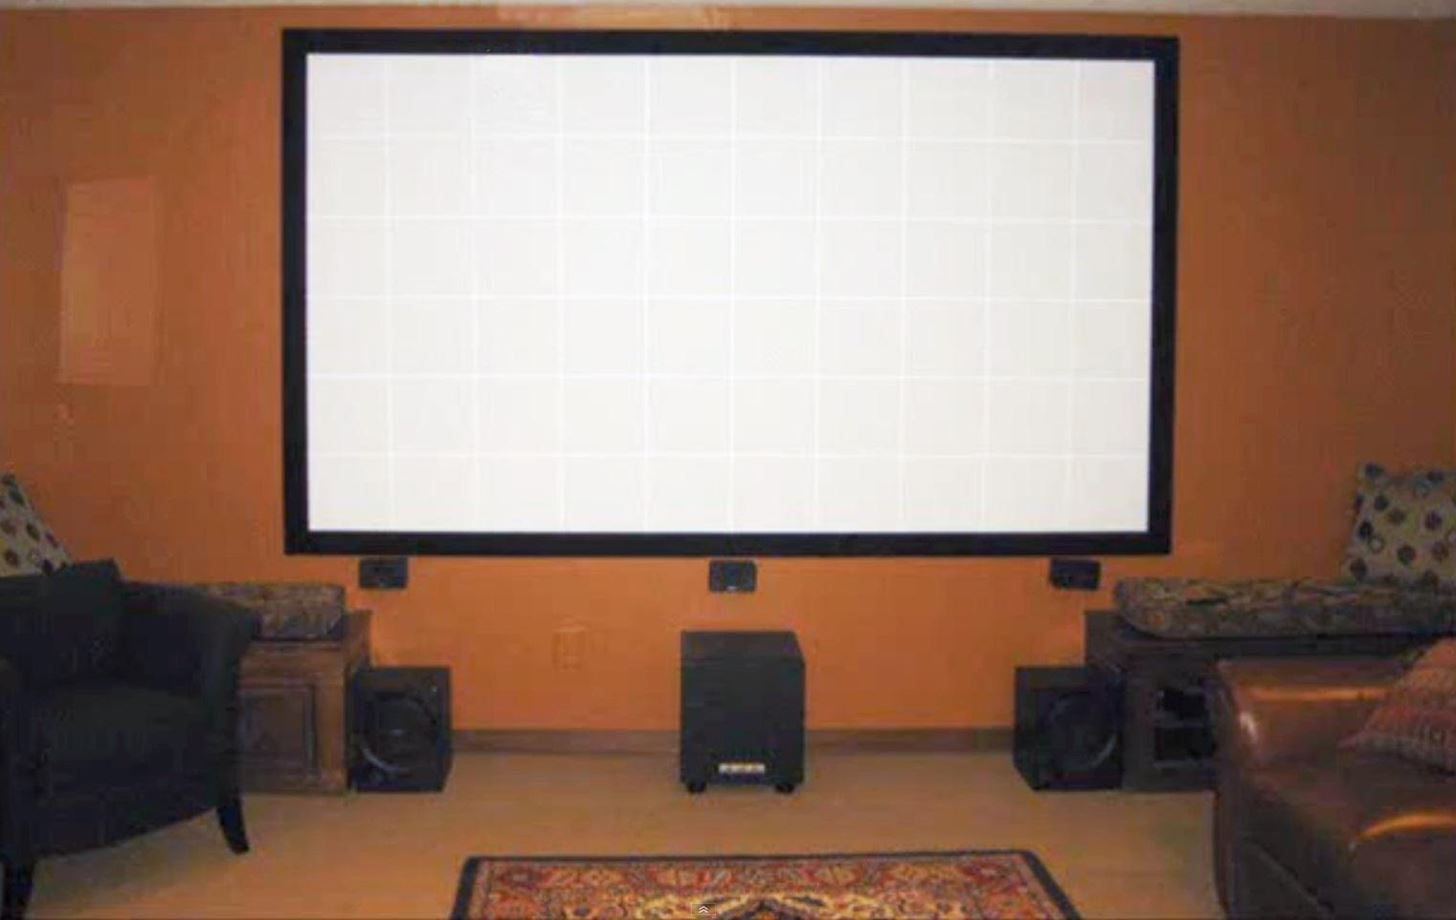 How To Build Your Own Projector Screen At Home For Less Than Fifty Bucks «  MacGyverisms :: WonderHowTo